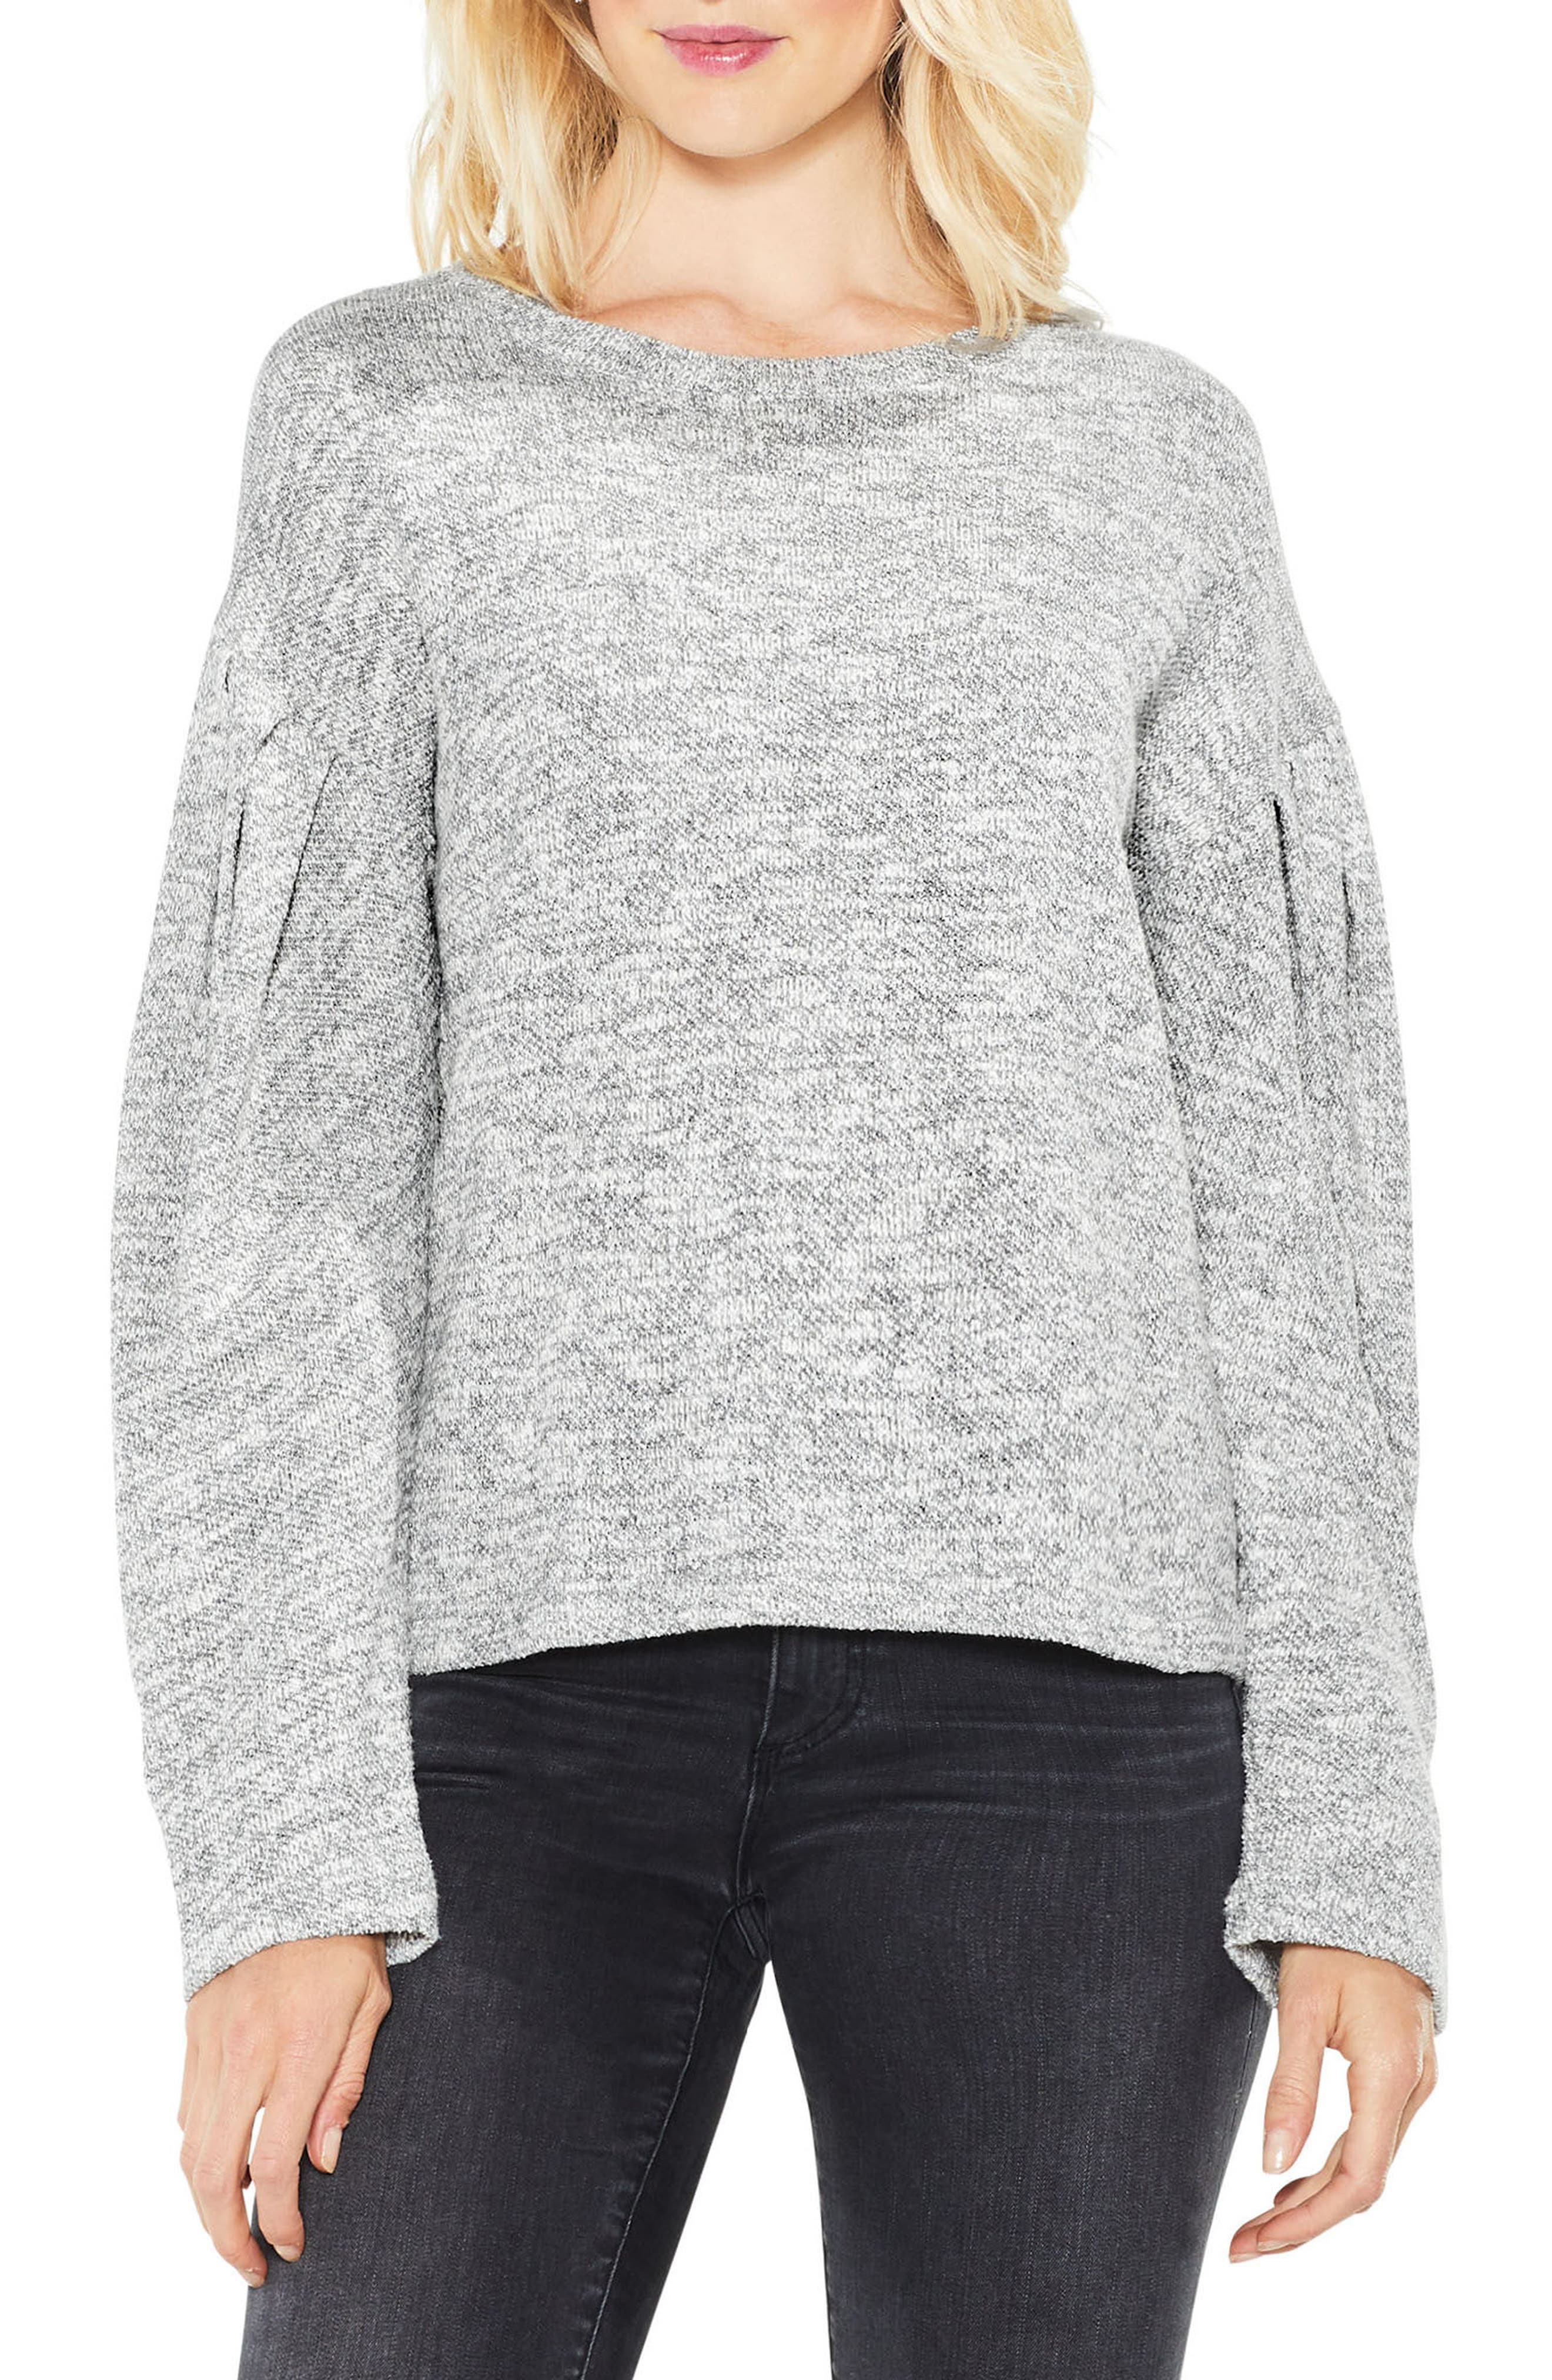 Main Image - Two by Vince Camuto Metallic Knit Sweater